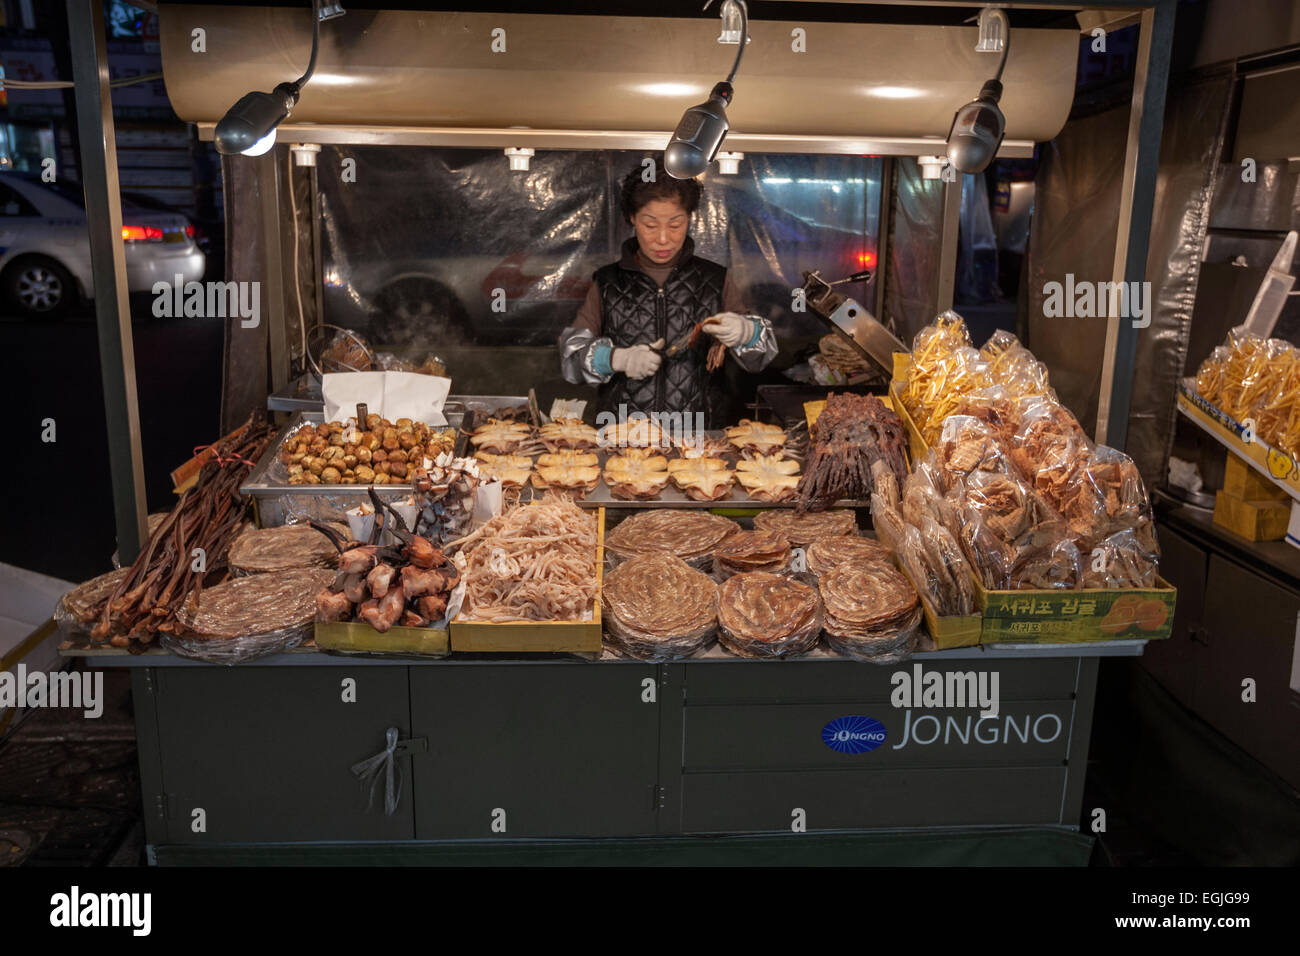 Woman street food market in Jongno  in central Seoul,  South Korea - Stock Image